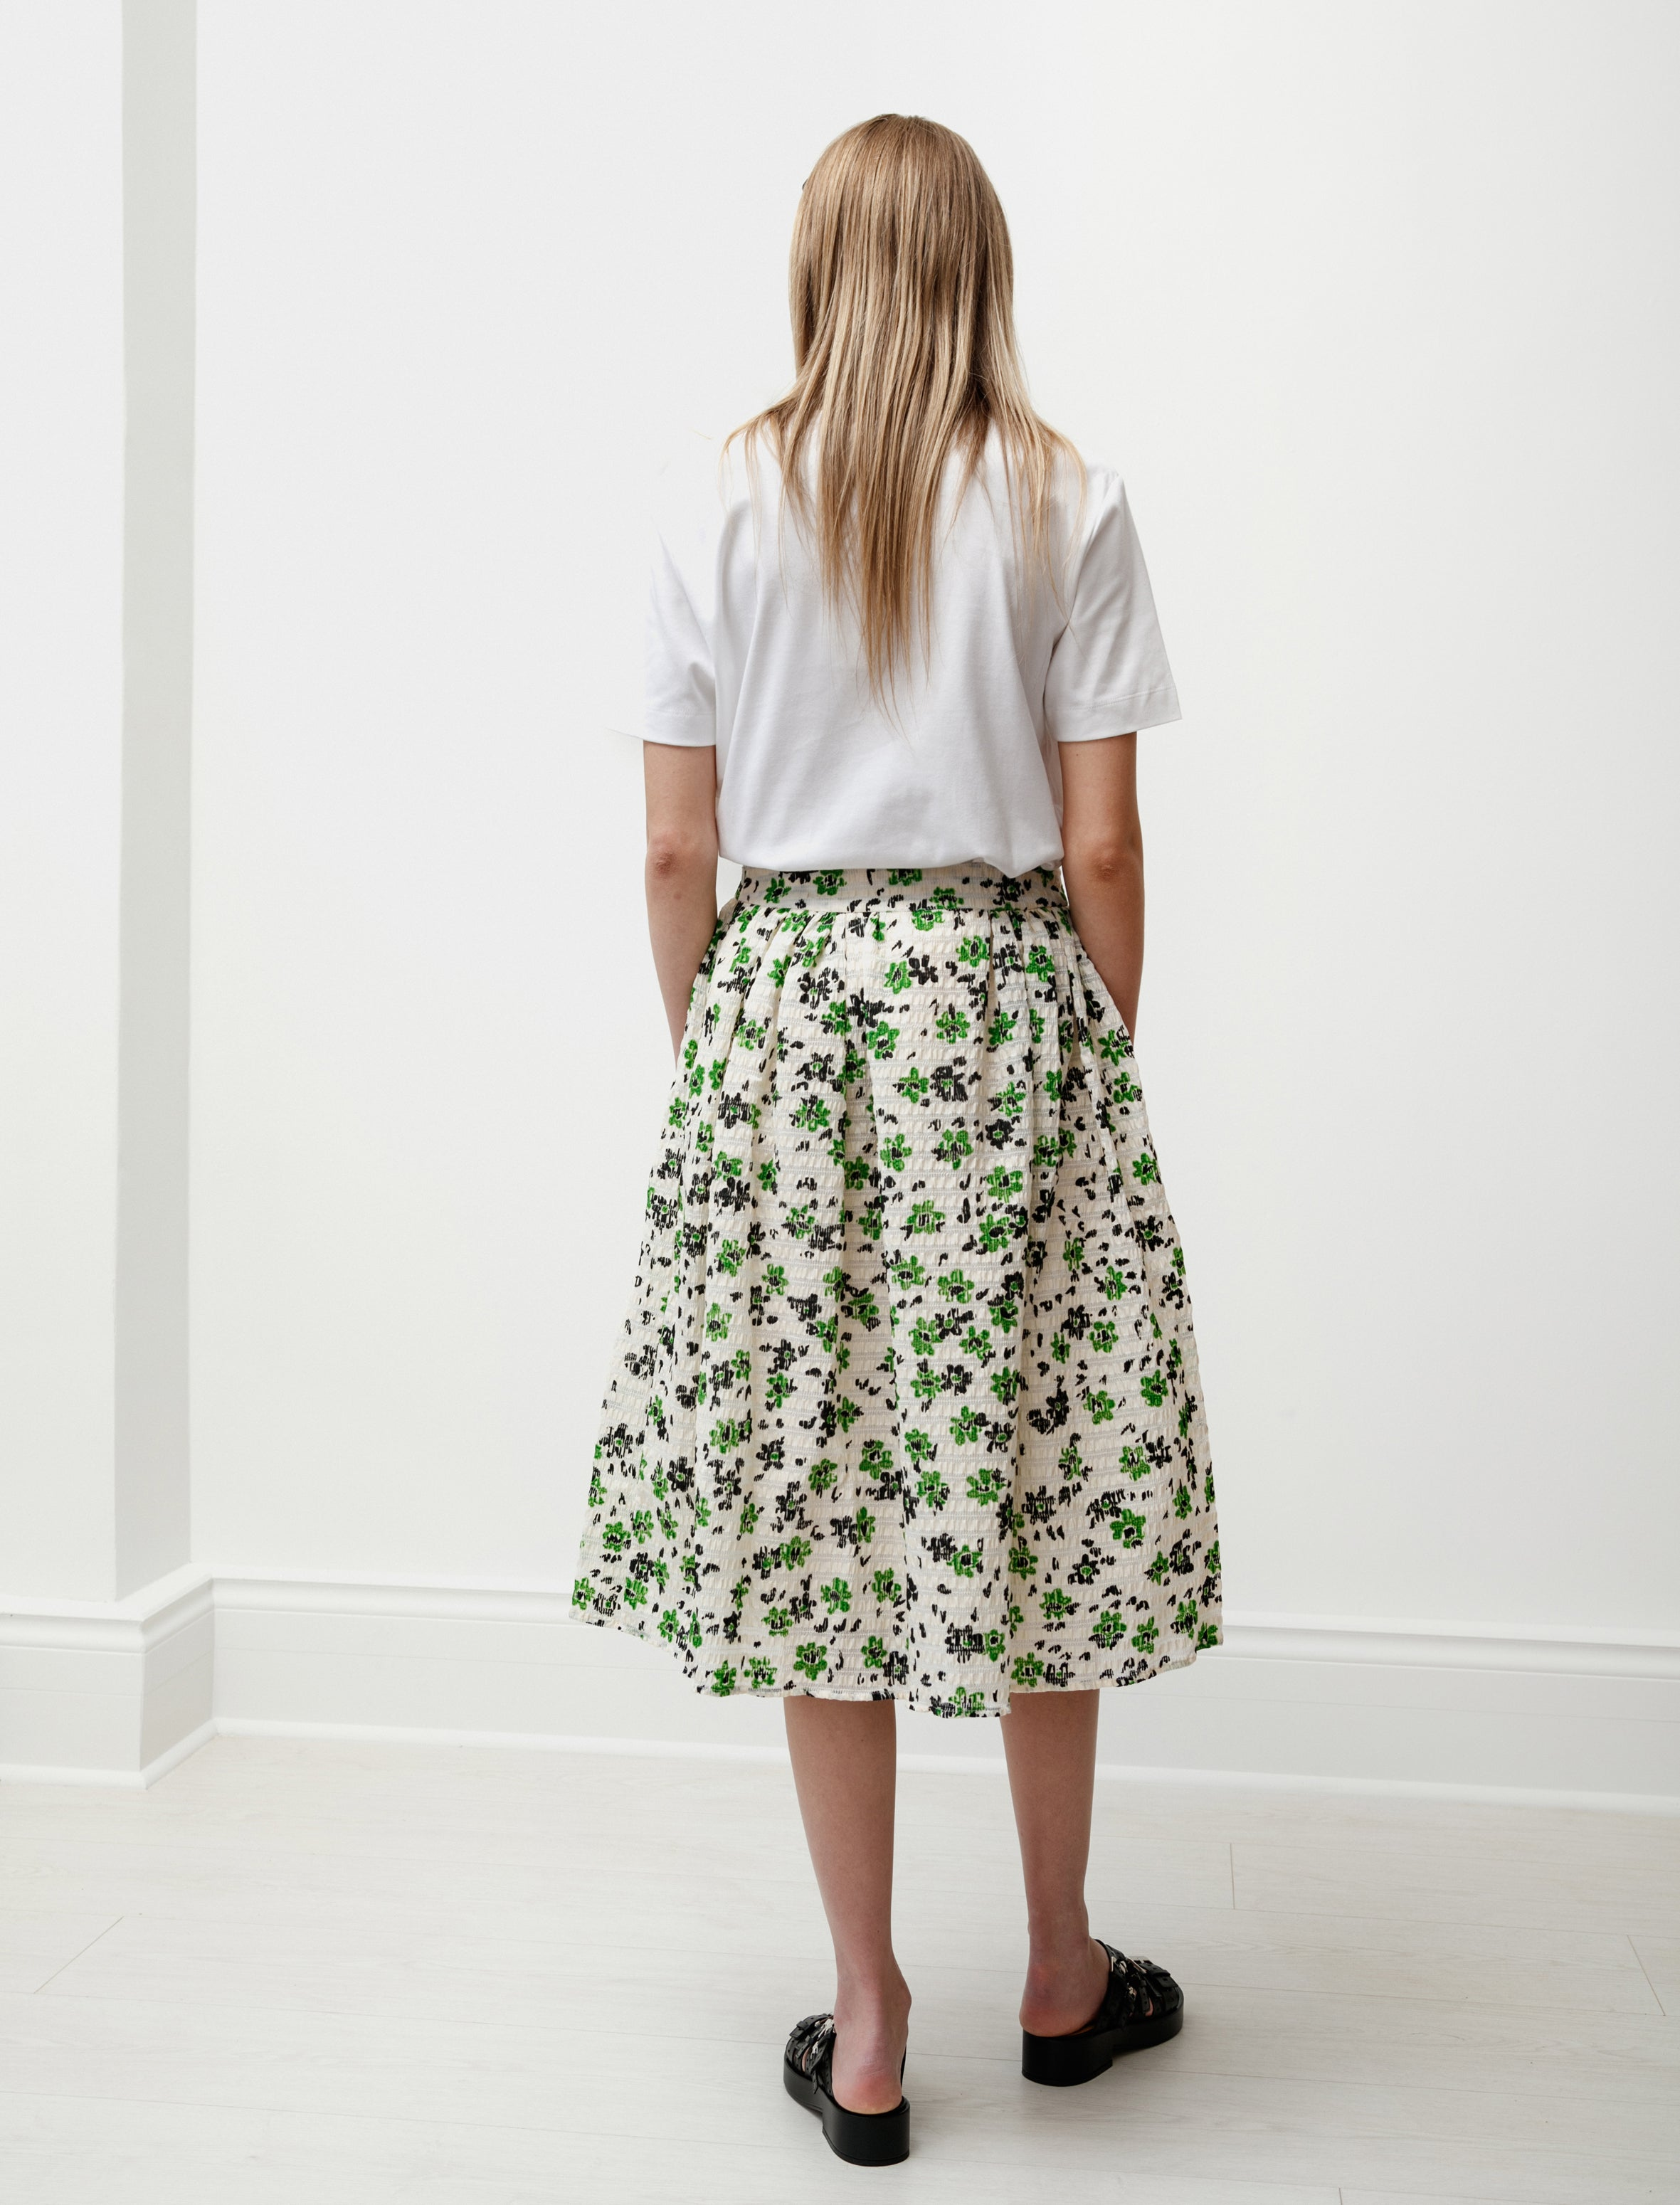 Shrimps Wade Gathered Skirt Green/Cream